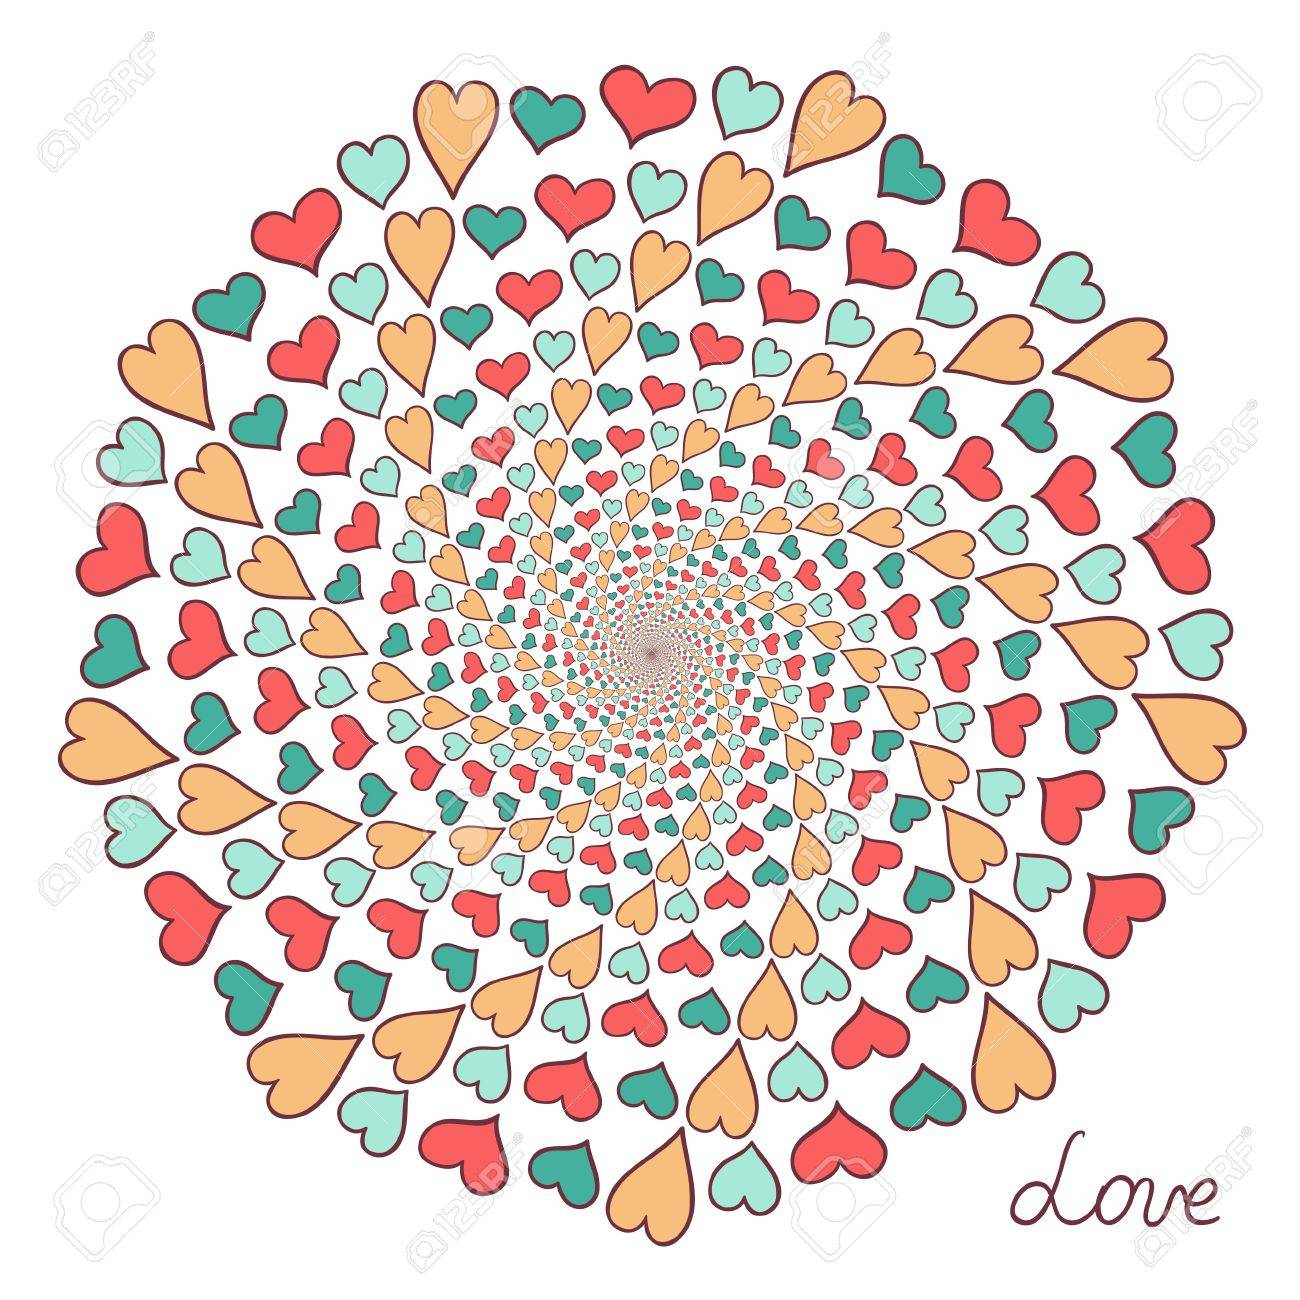 Color hand drawn hearts  Abstract composition Stock Vector - 16710869